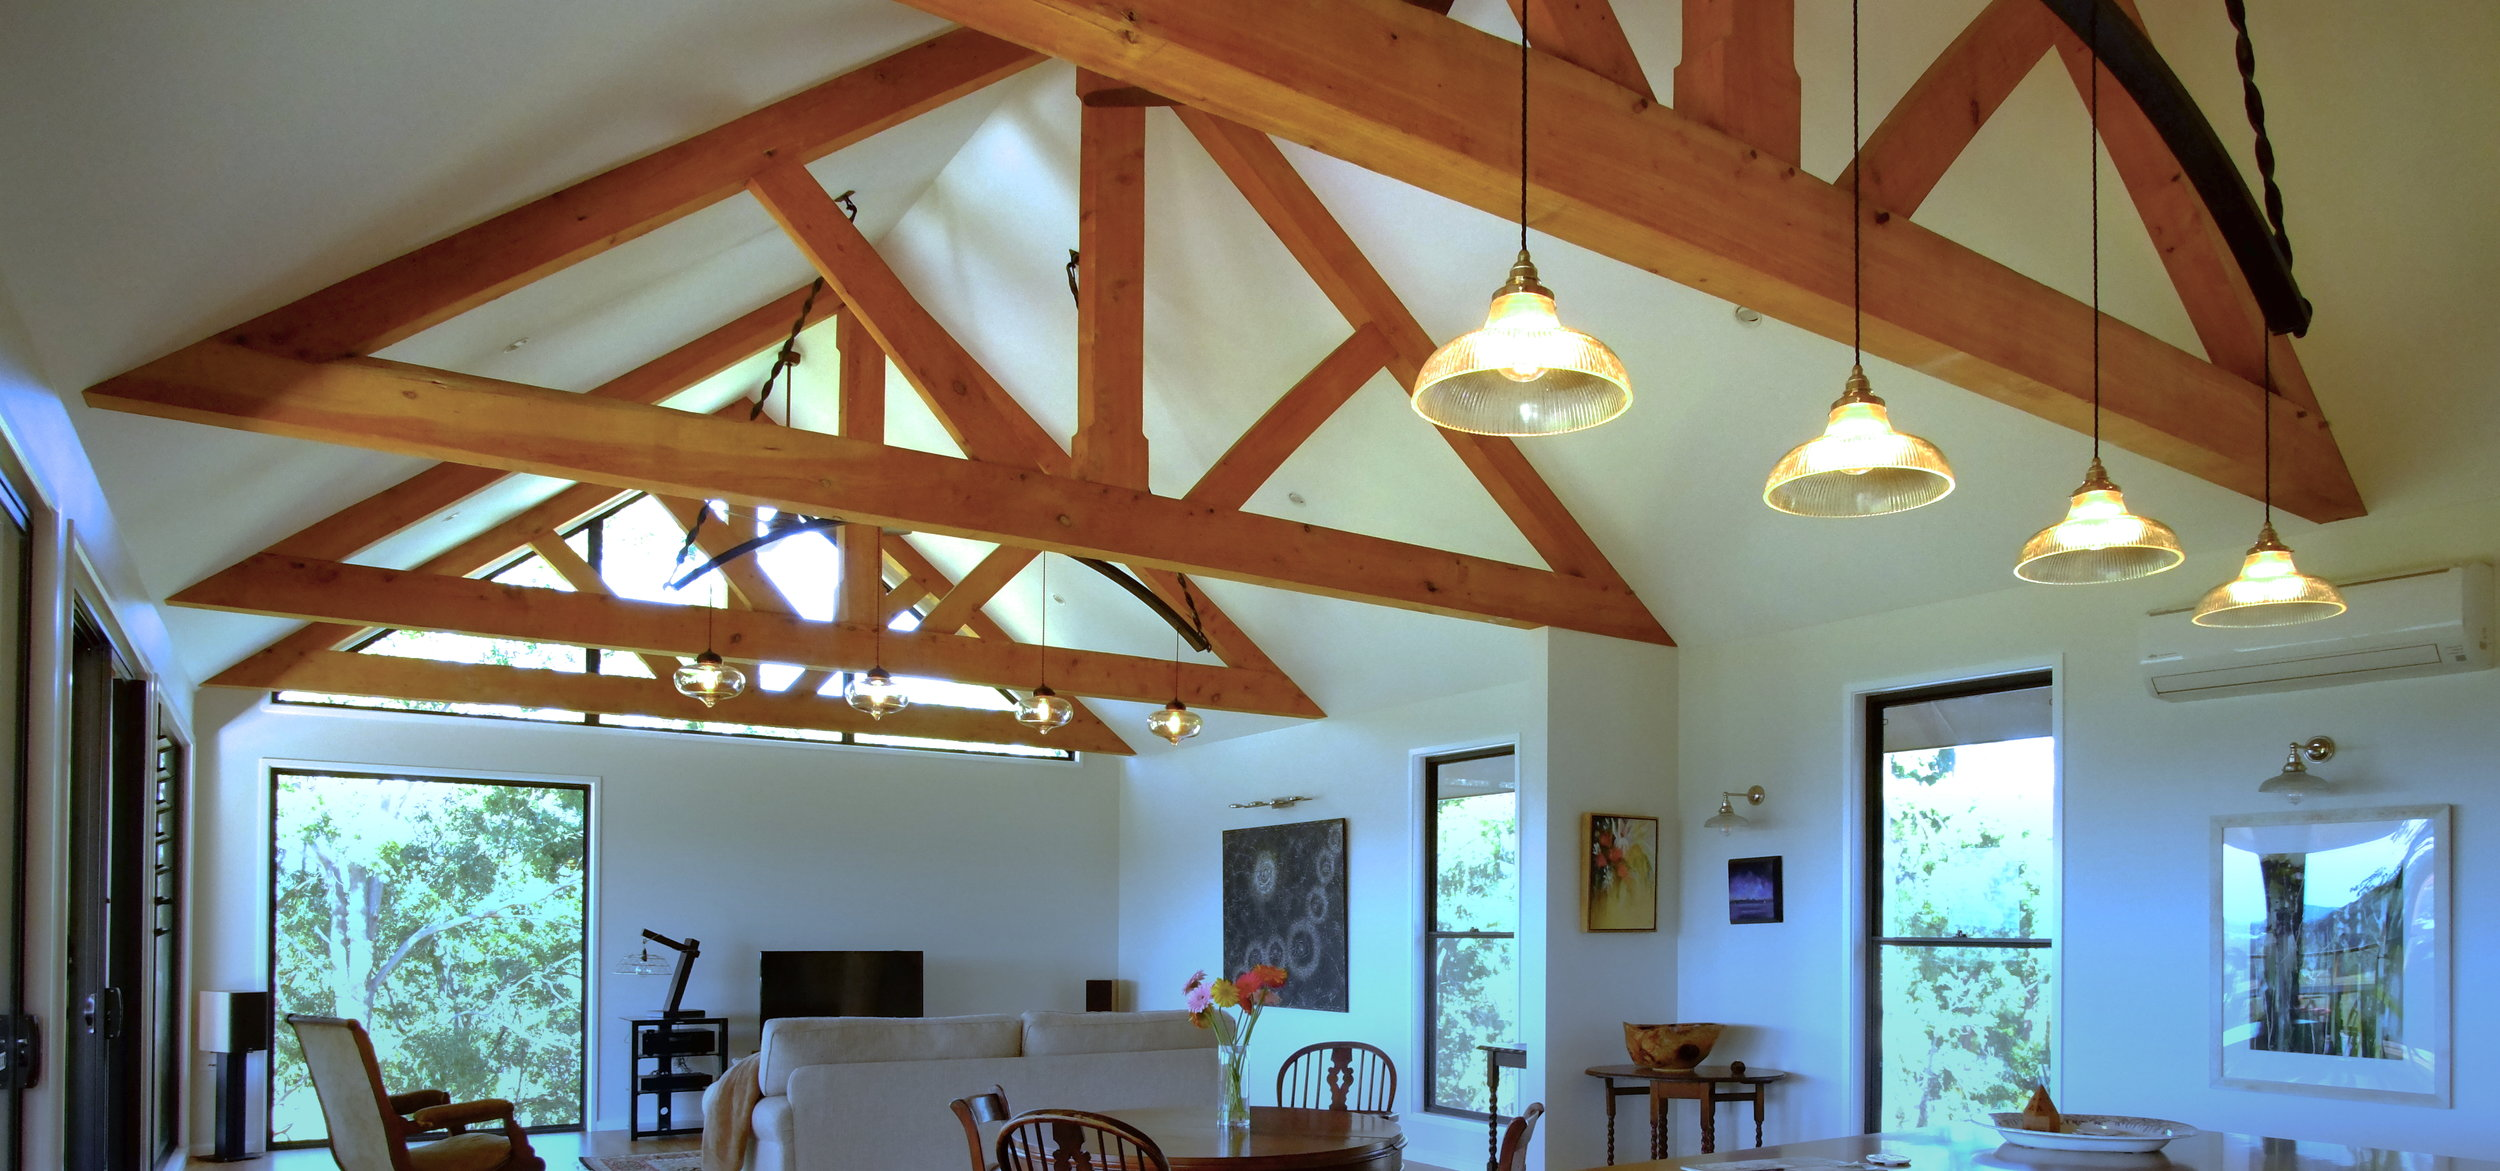 - Feature Trusses